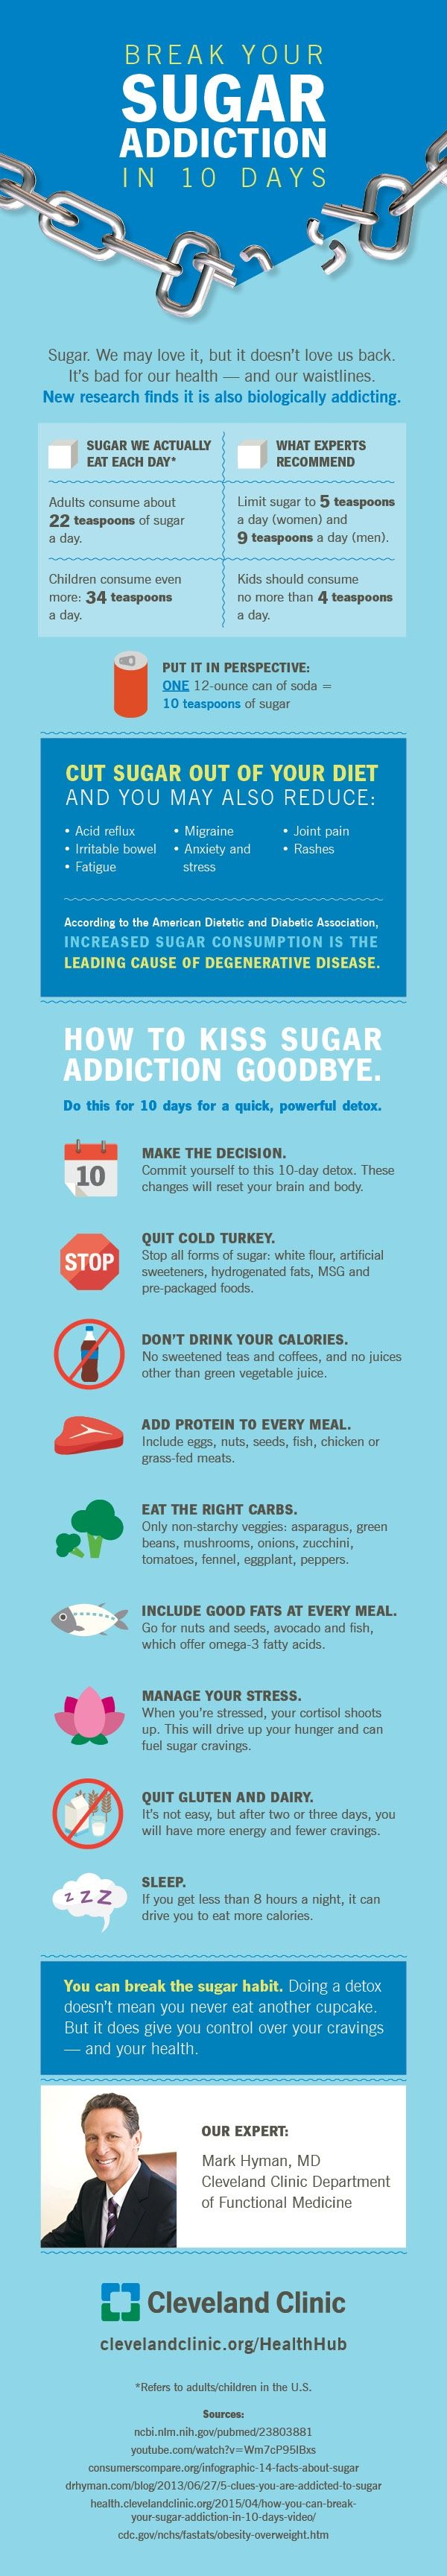 Get Rid of Sugar Addiction in 10 Days  Do you have a sweet tooth? Most of us will overindulge at times. But the more sugar we consume, the more we want, says Mark Hyman, MD. However, the good news is that people can break the sugar addiction in 10 days. Here's how.